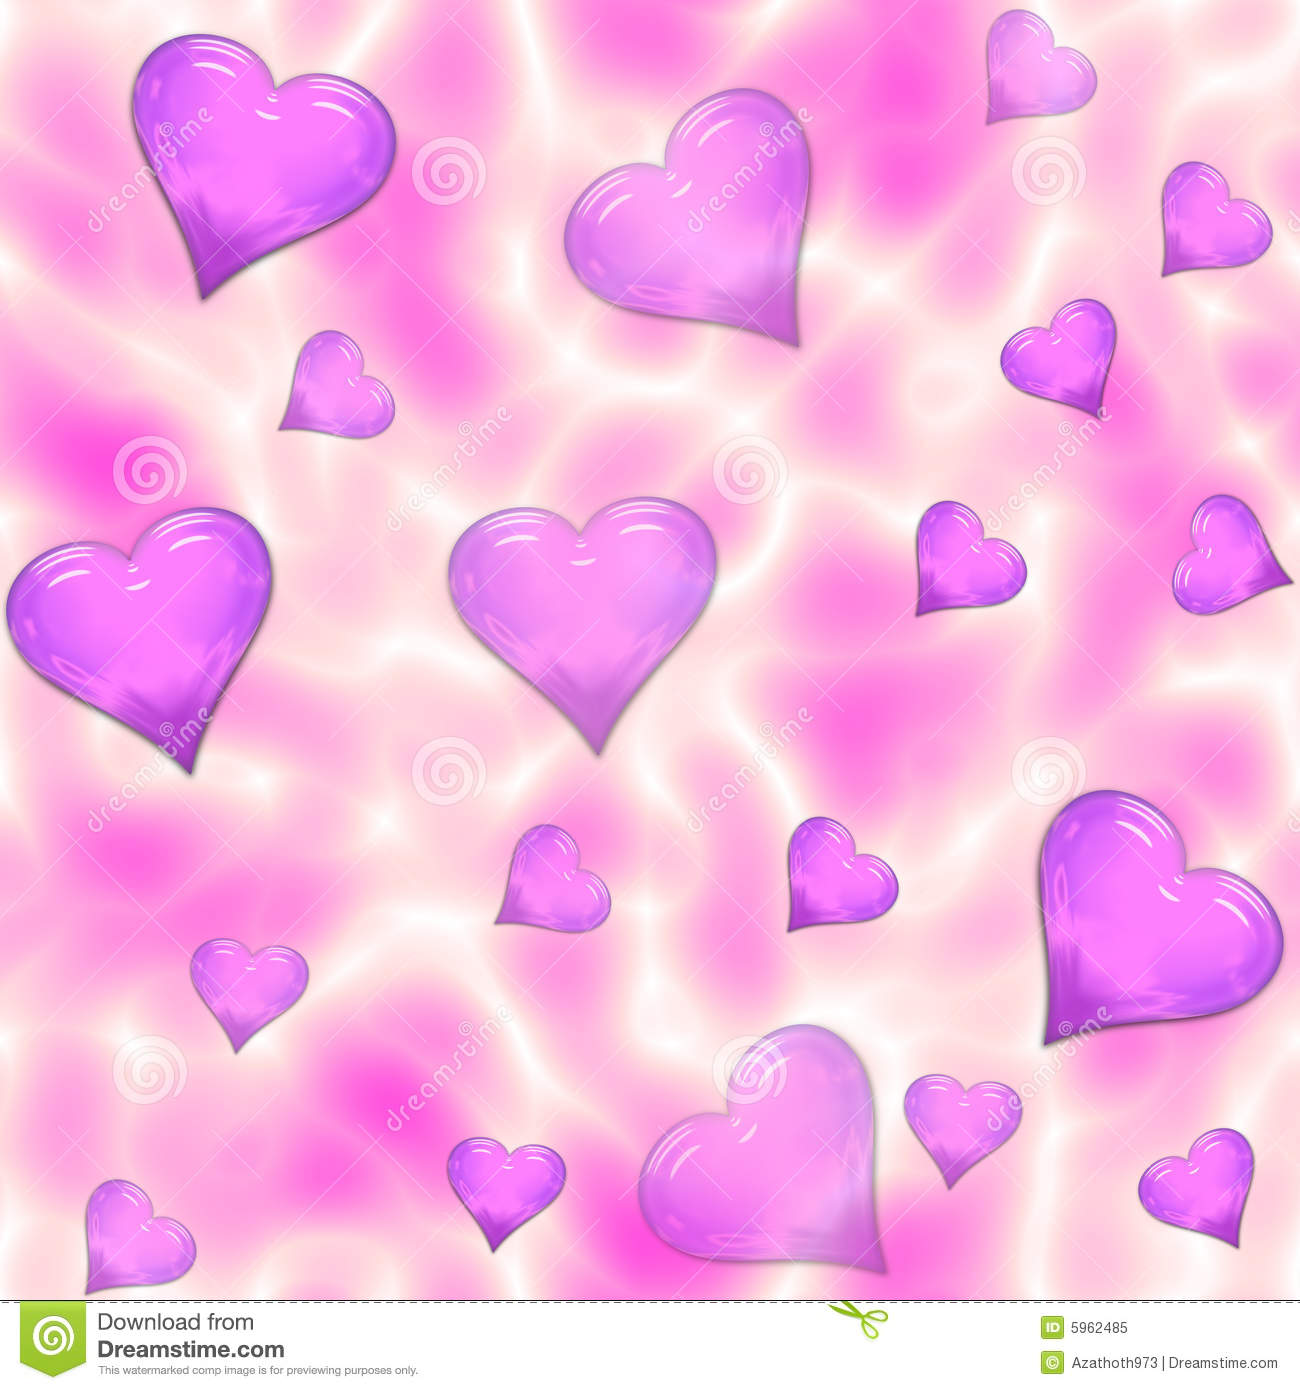 Psychedelic Seamless Hearts Tile